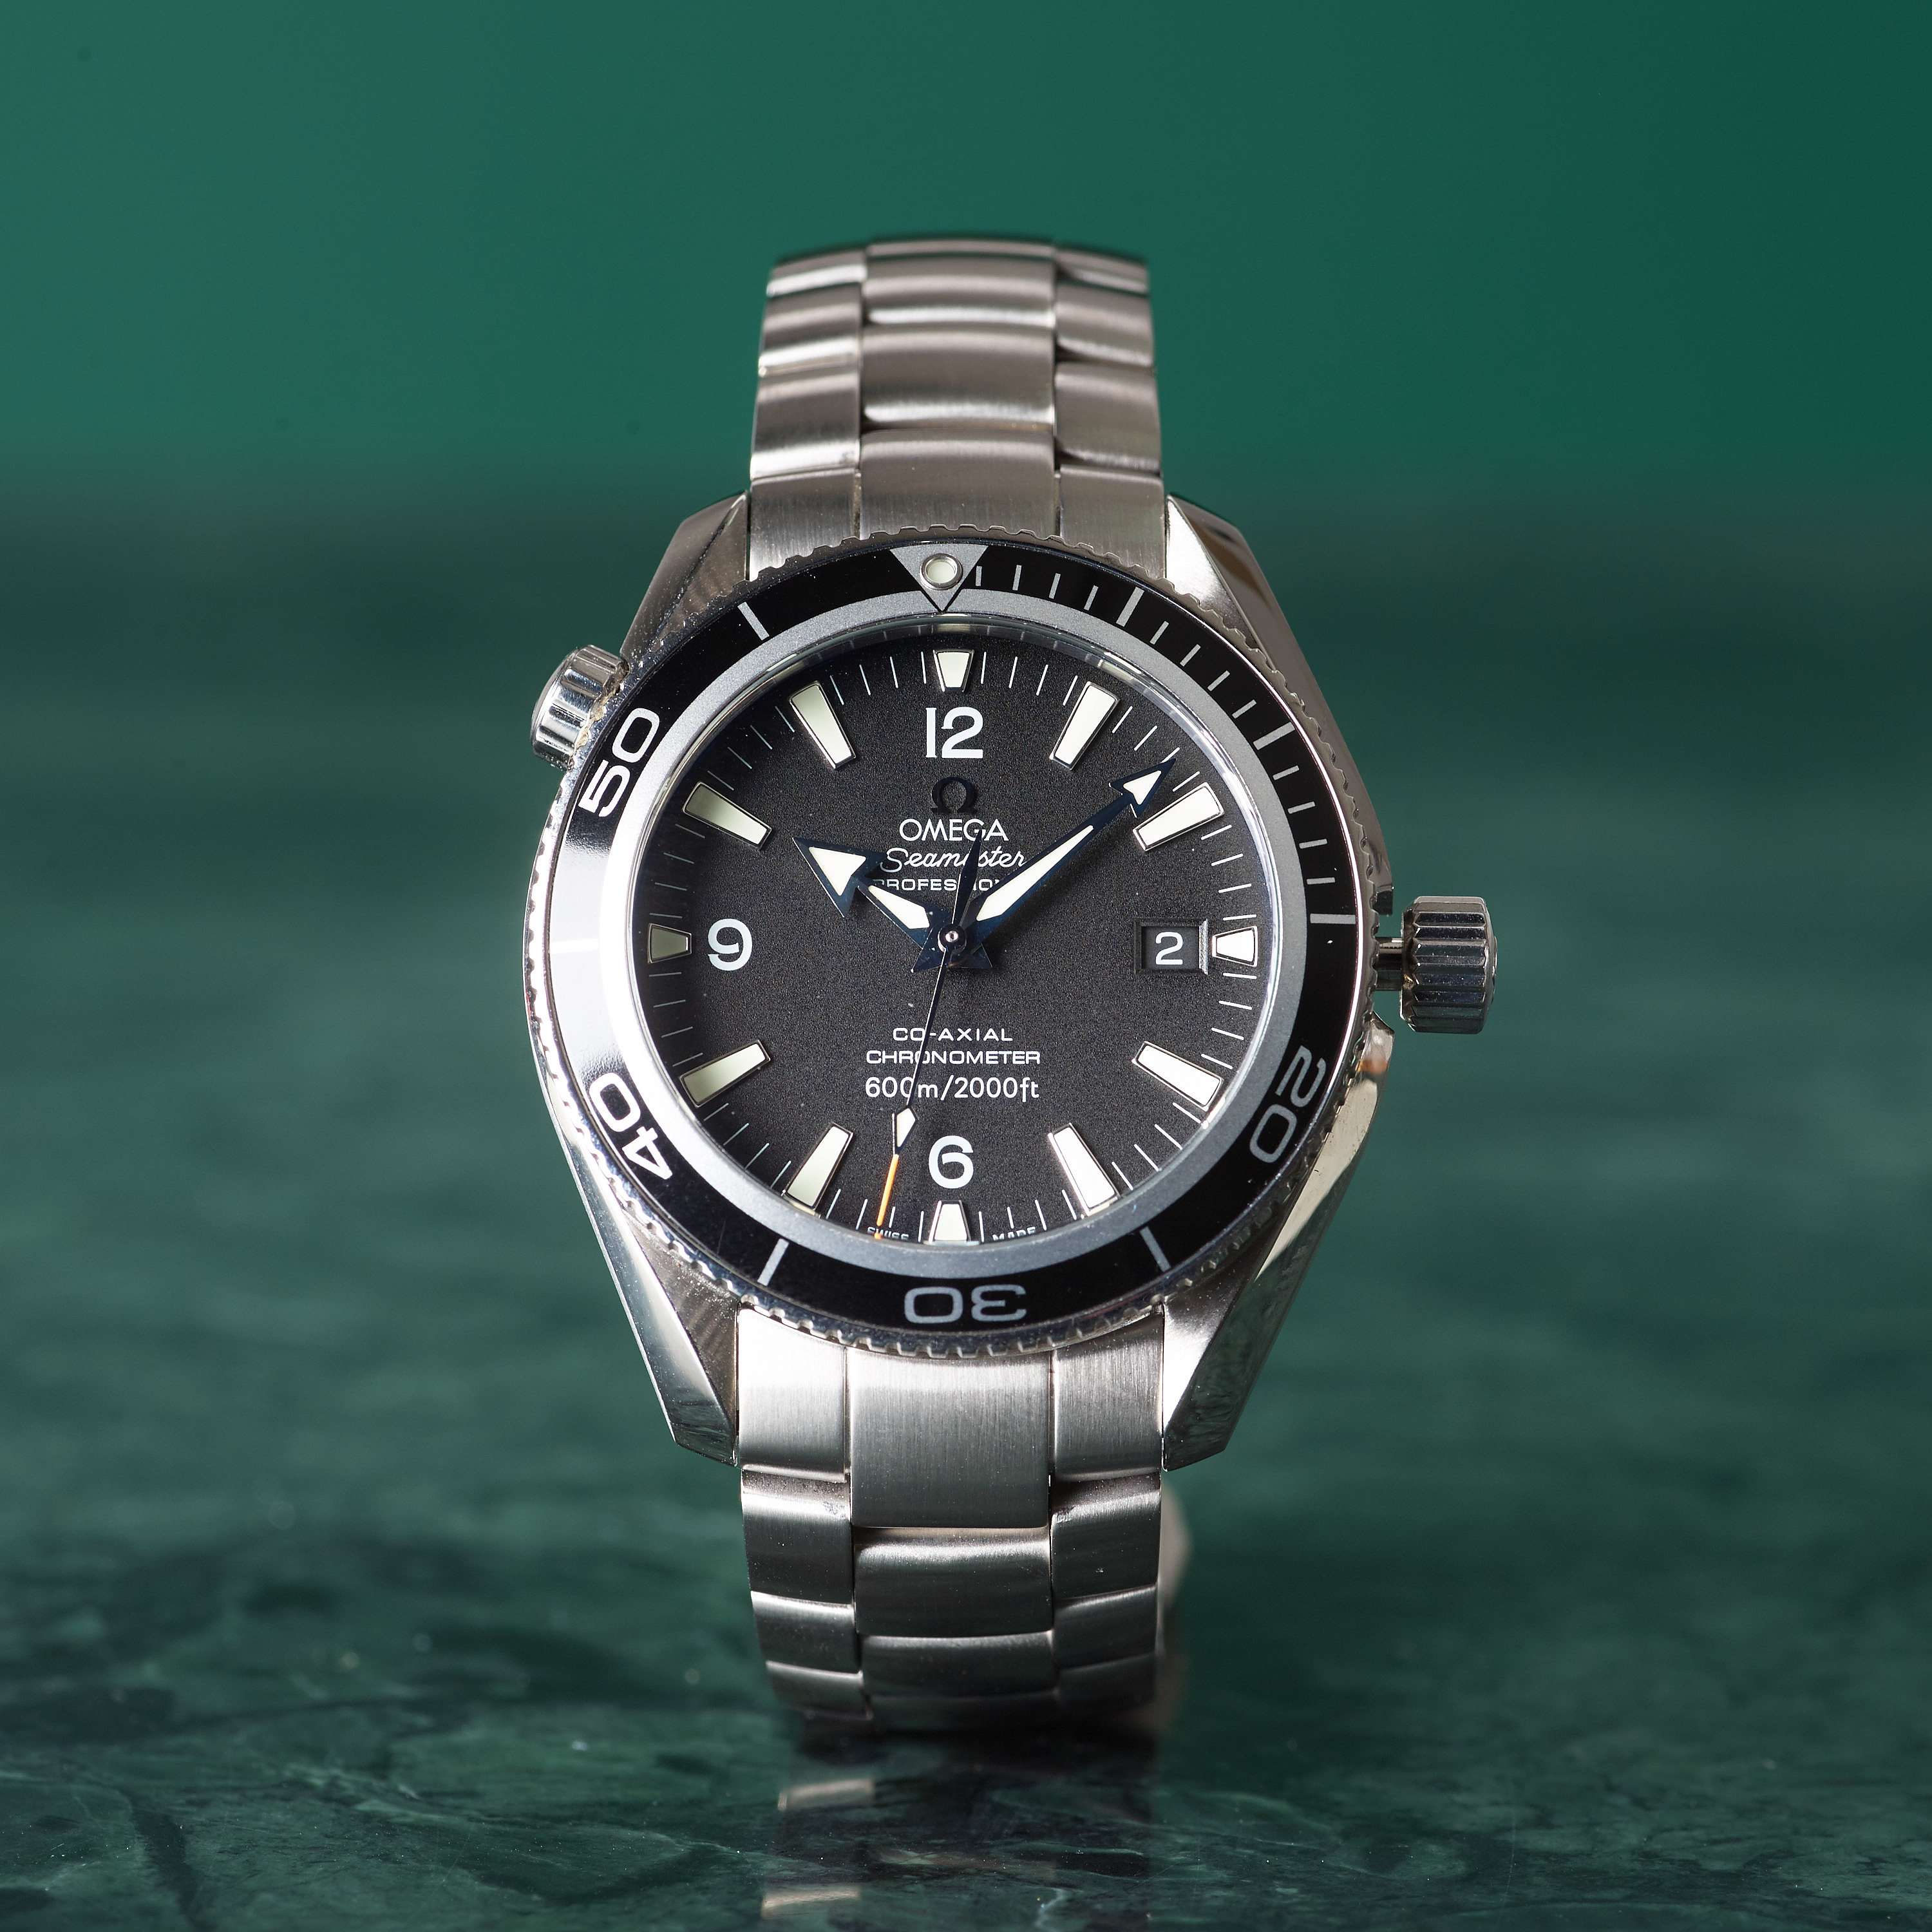 Omega seamaster professional 600m 2000ft planet ocean chronometer wristwatch 42 mm for Omega seamaster professional